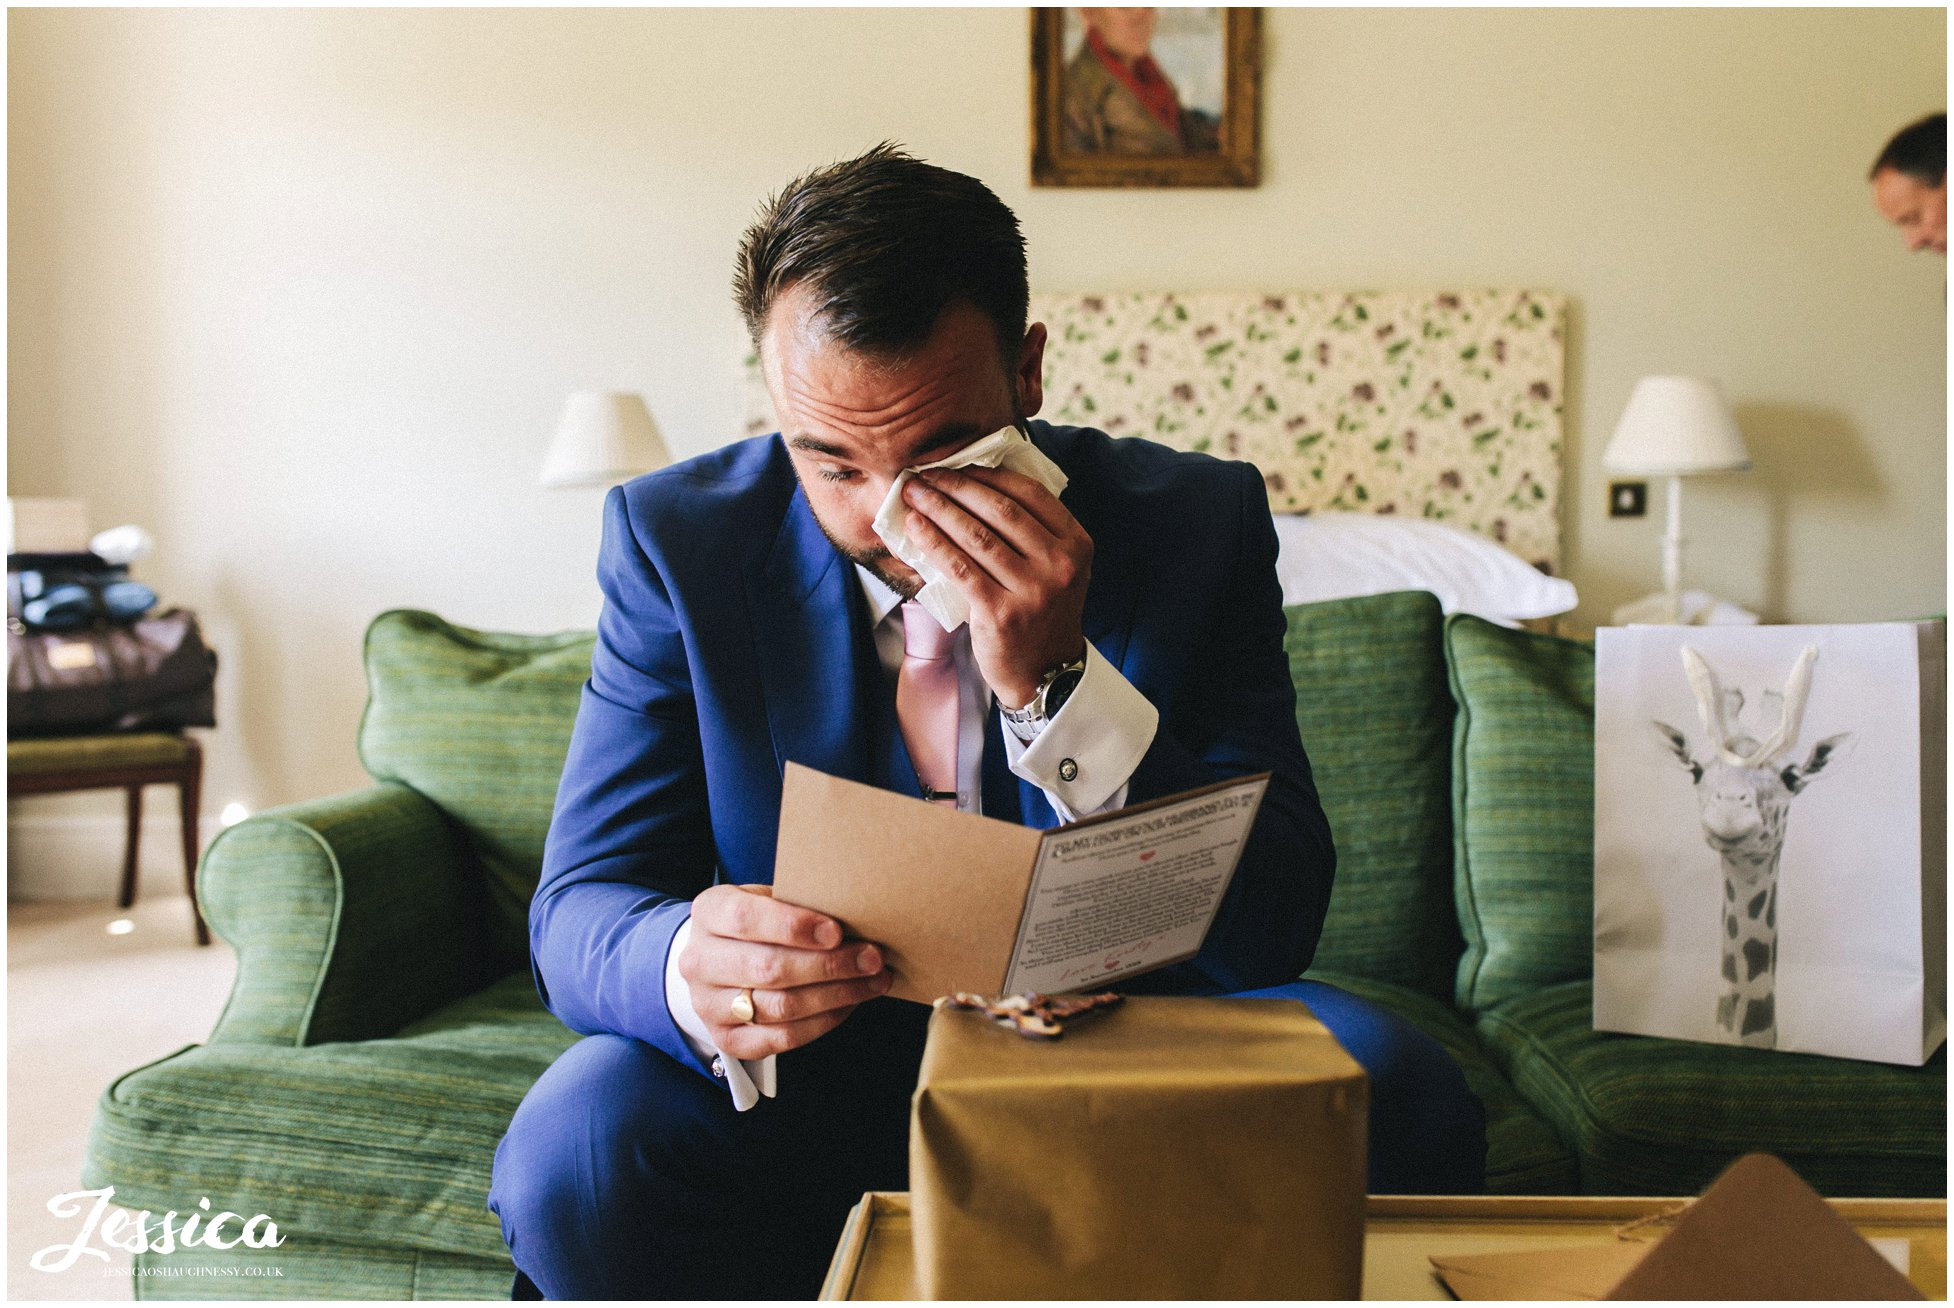 the groom cries as he reads a note from the bride